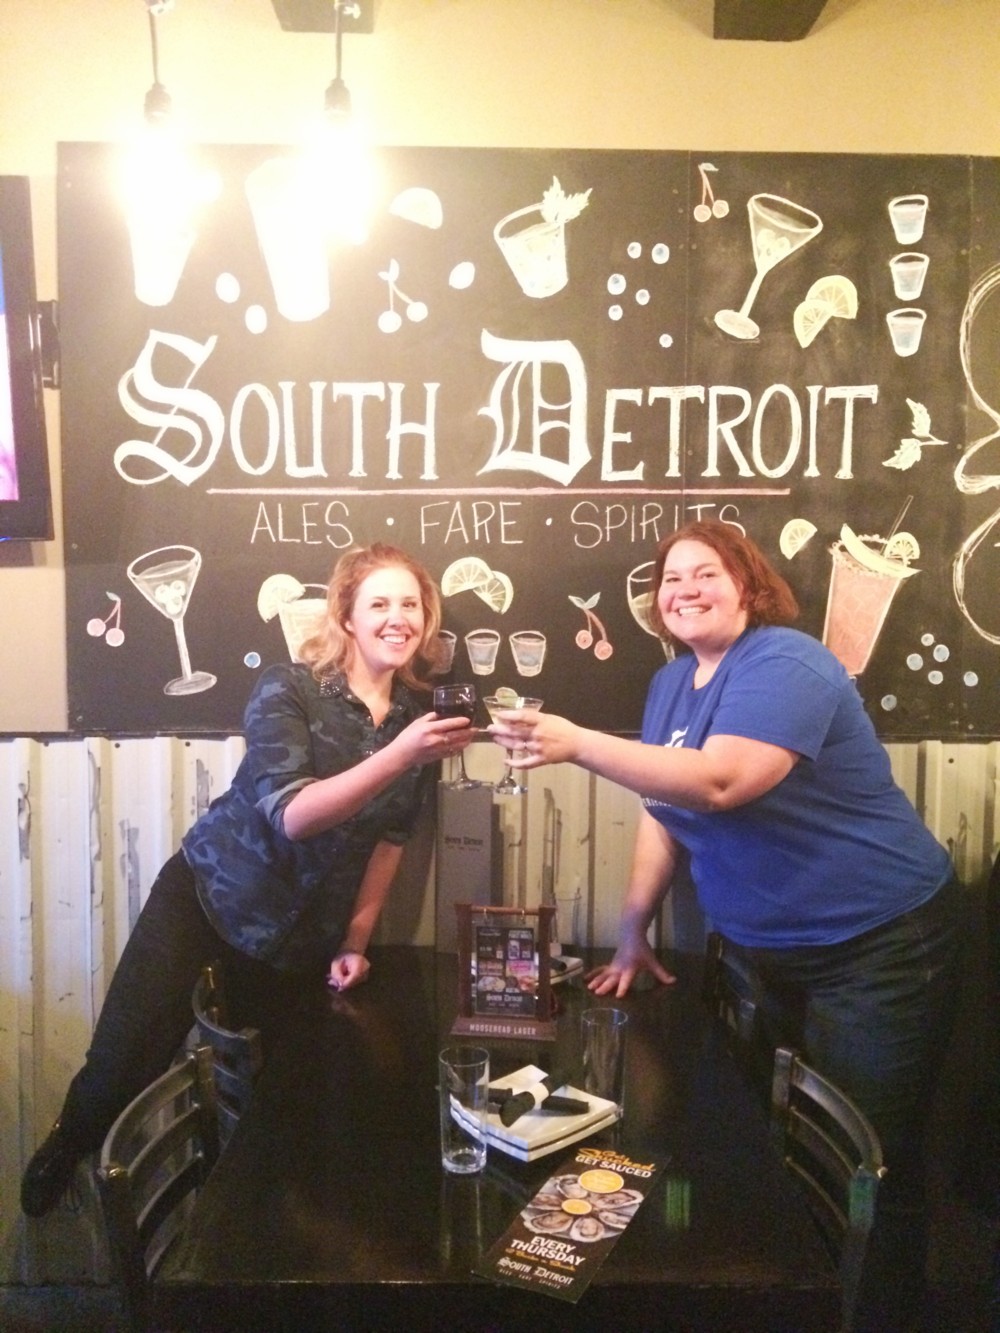 Cheers to hanging out in  South Detroit!